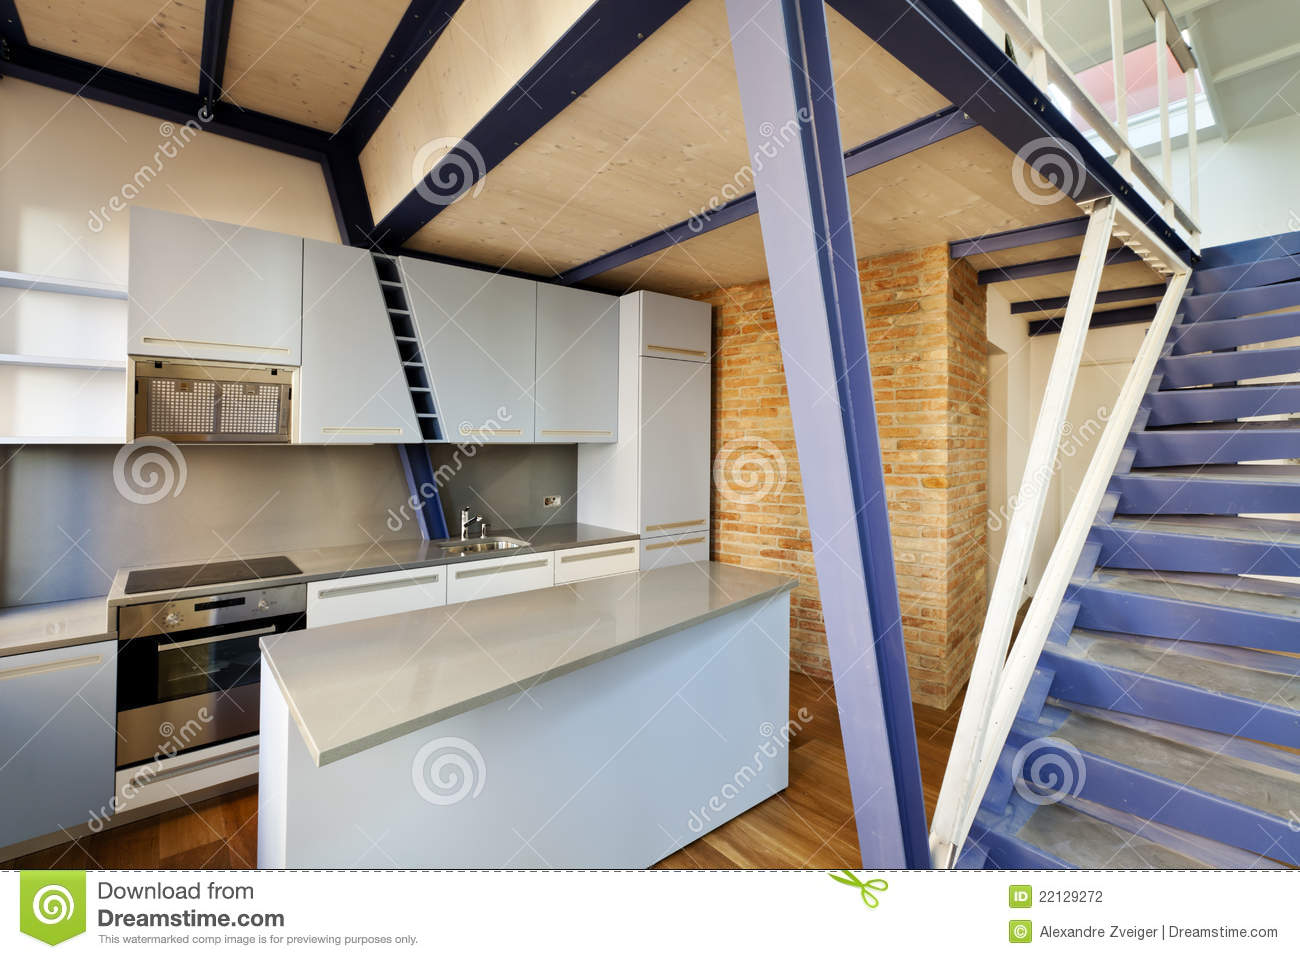 cuisine sous la mezzanine photo stock image du architecture 22129272. Black Bedroom Furniture Sets. Home Design Ideas